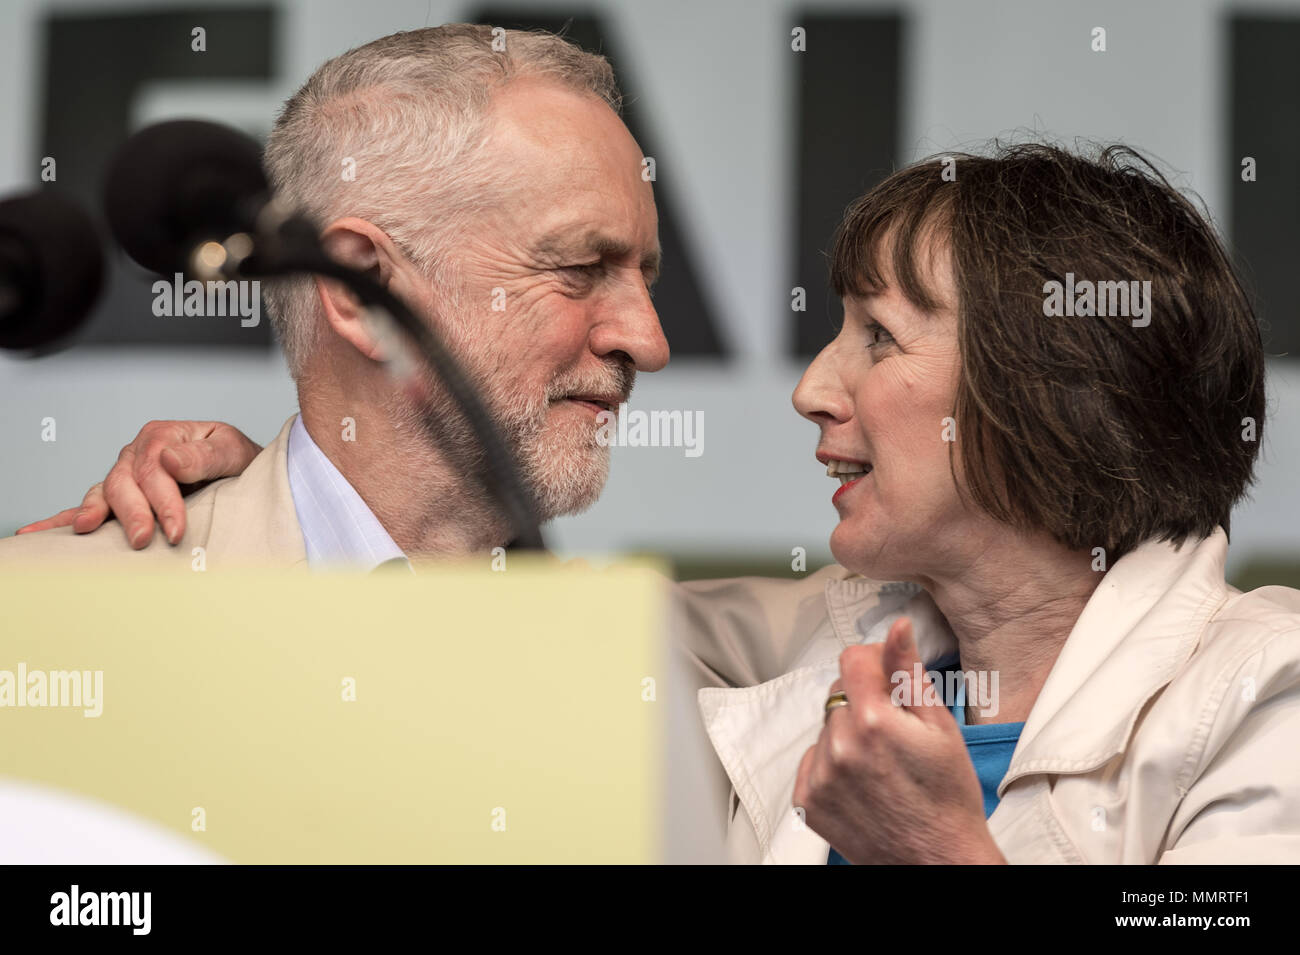 London, UK. 12th May, 2018. Jeremy Corbyn(L), The Labour Party leader, speaks with TUC General Secretary Frances O'Grady, after giving a speech to a crowd of  thousands of trade unionists during a TUC rally in Hyde Park. Credit: Guy Corbishley/Alamy Live News - Stock Image